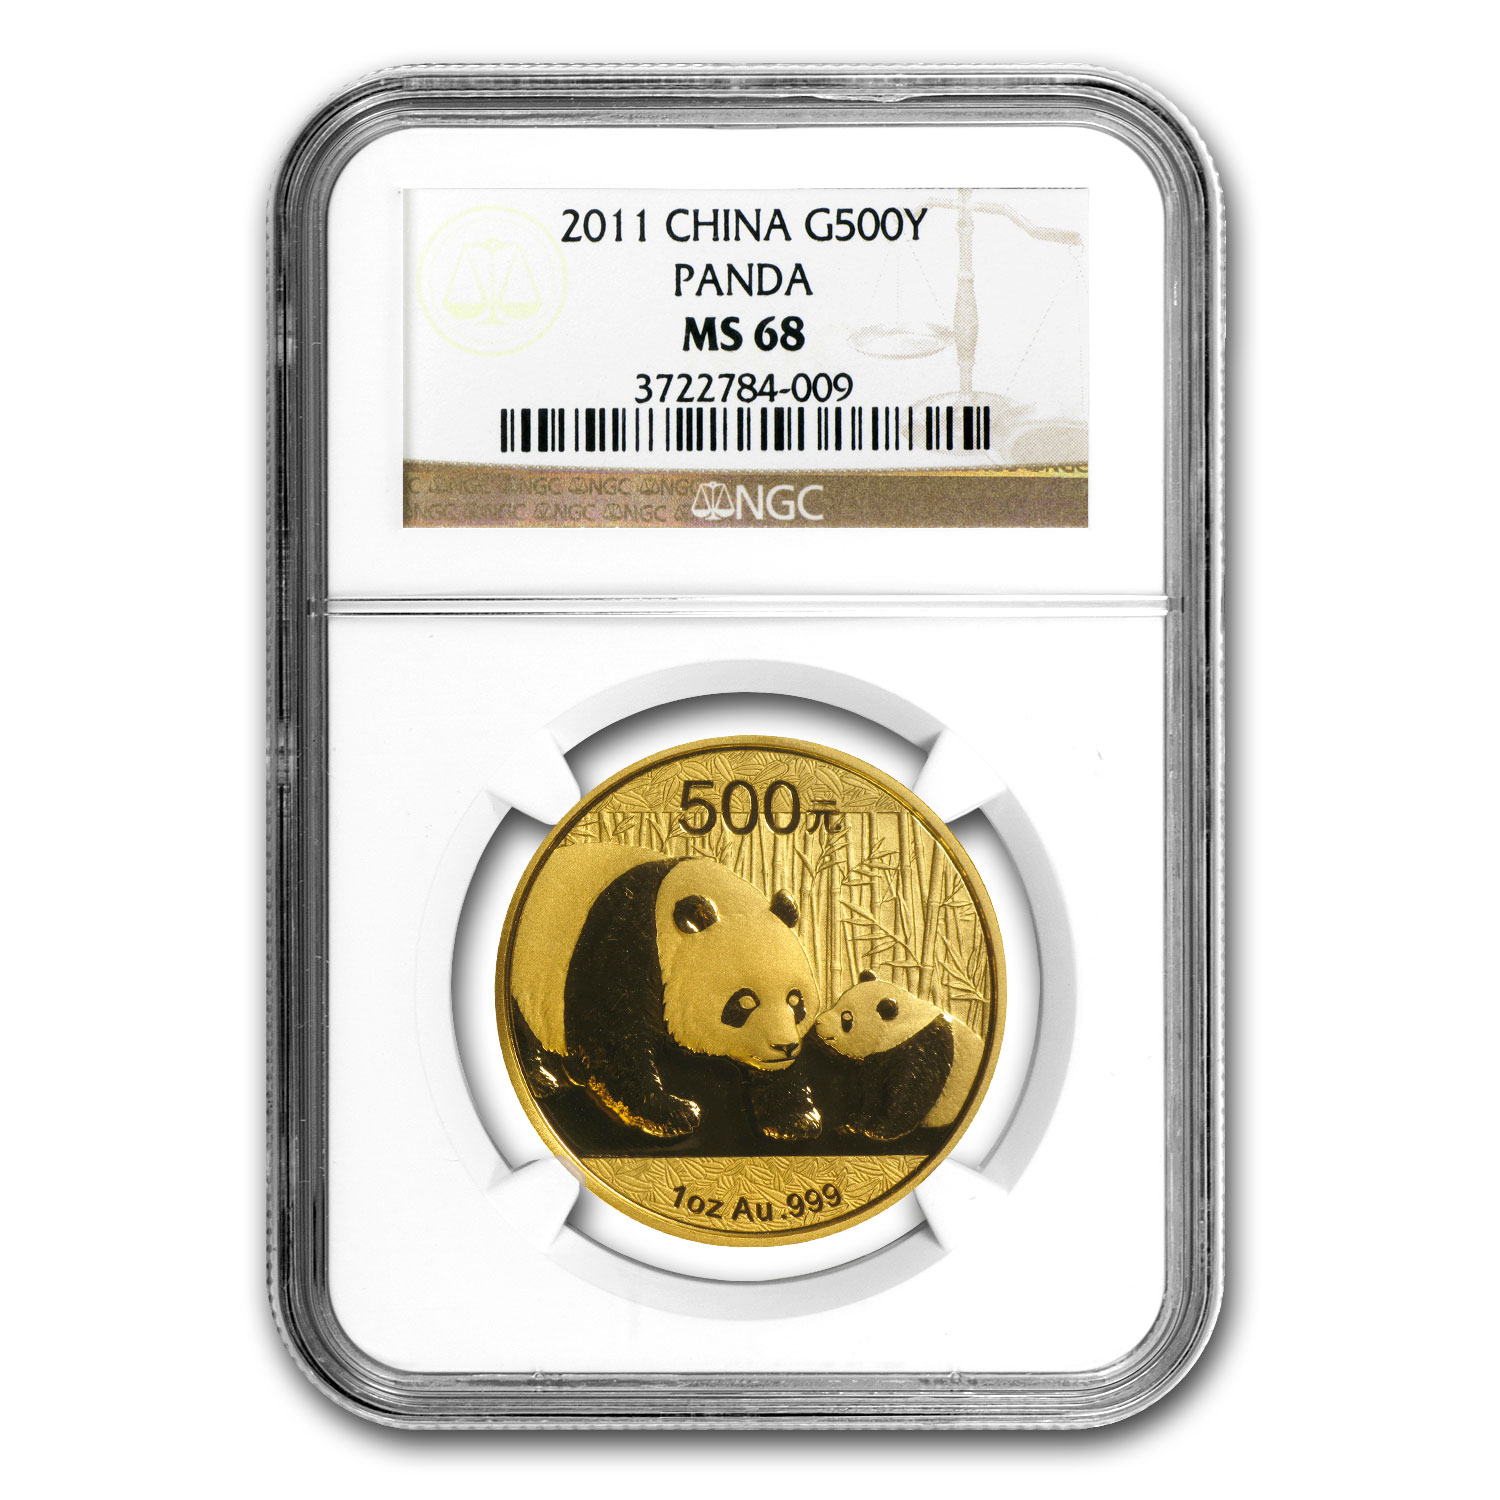 2011 China 1 oz Gold Panda MS-68 NGC